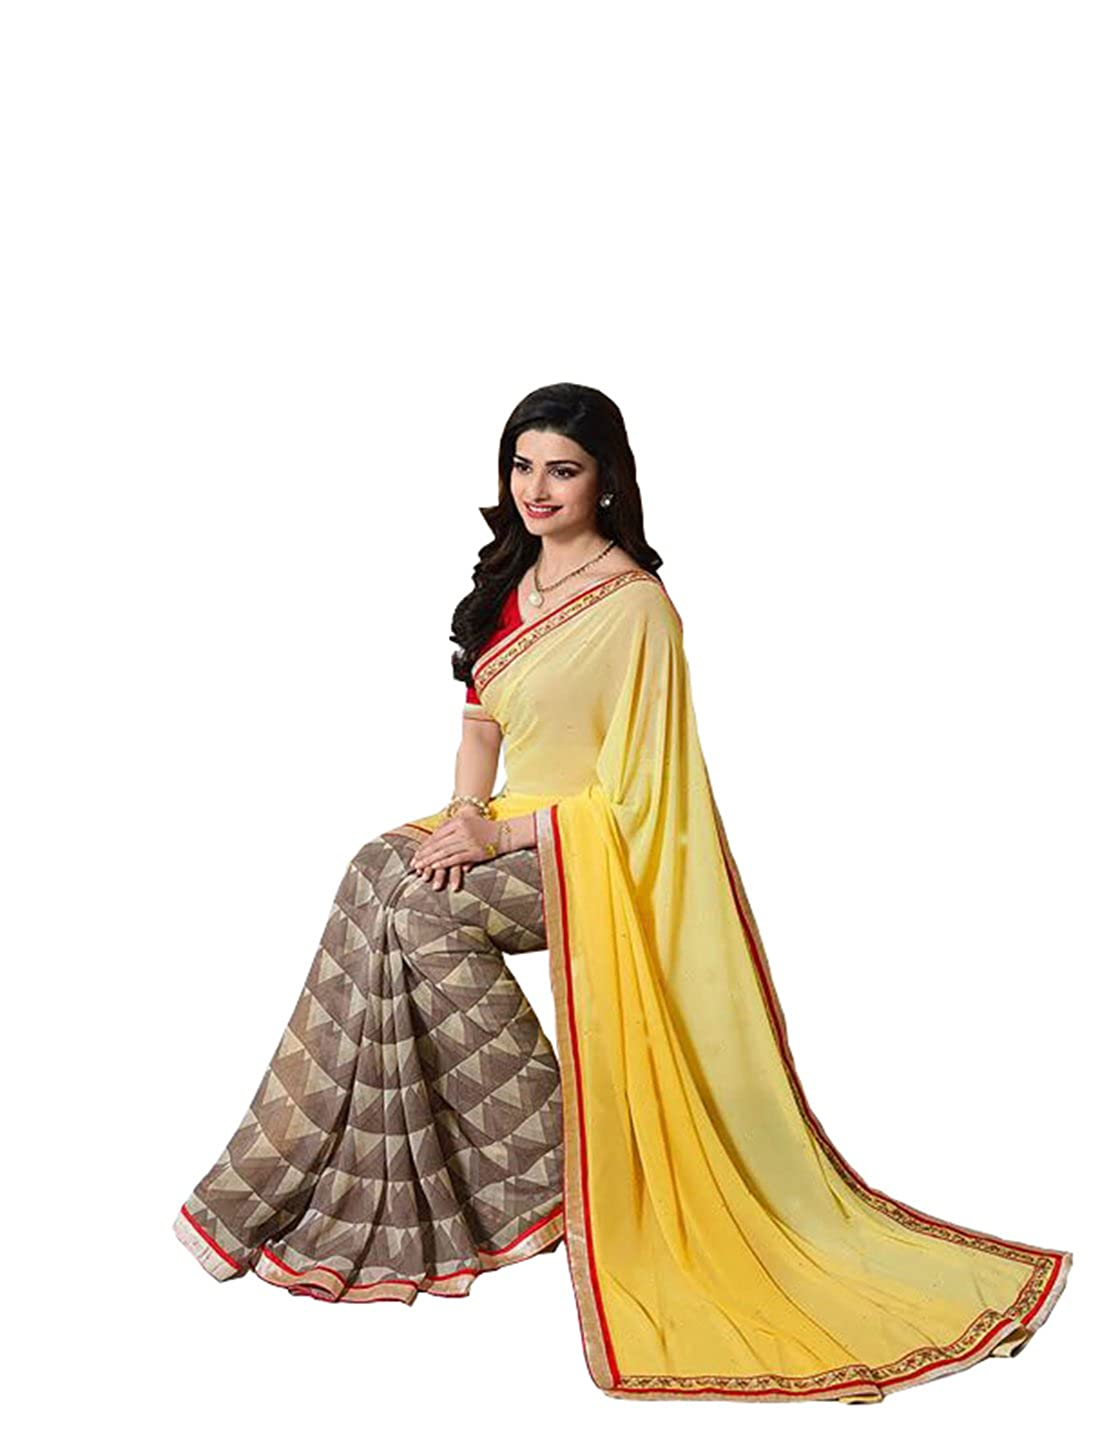 Buy Sarees Khushbu Fashion Women S Clothing Designer Wear Offer Buy Online In Yellow Georgette Material Printed Free Size Beautiful Saree For Women Offer Designer Sarees At Amazon In